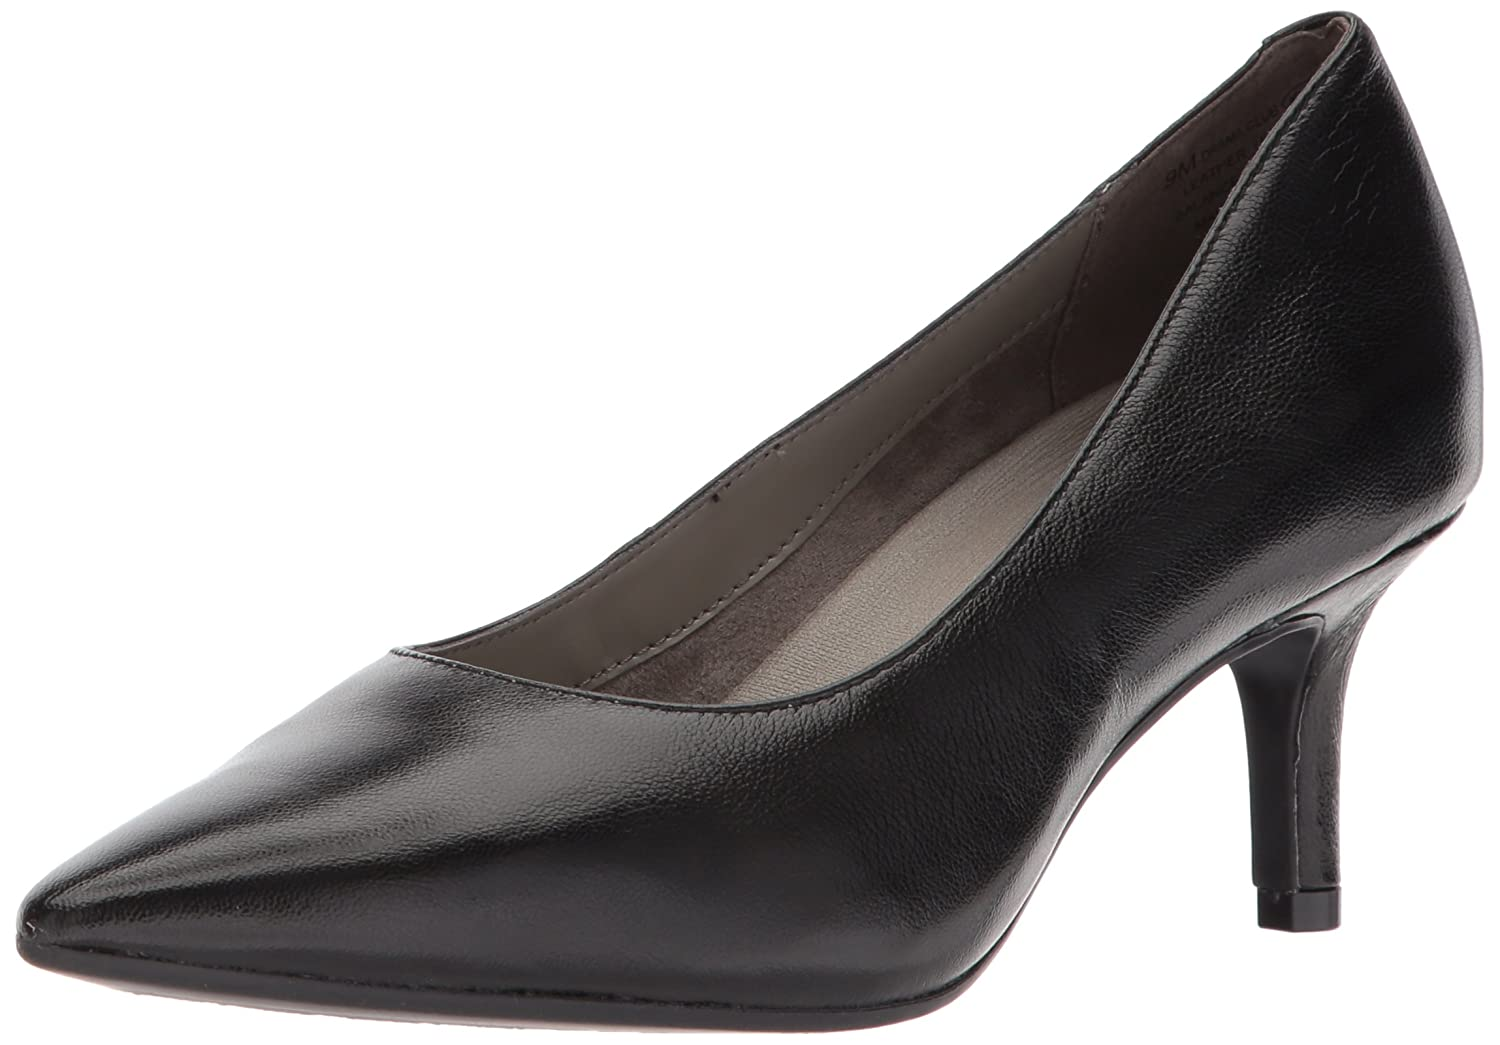 Aerosoles Women's Drama Club Pump B074QTPBDK 10.5 W US|Black Leather